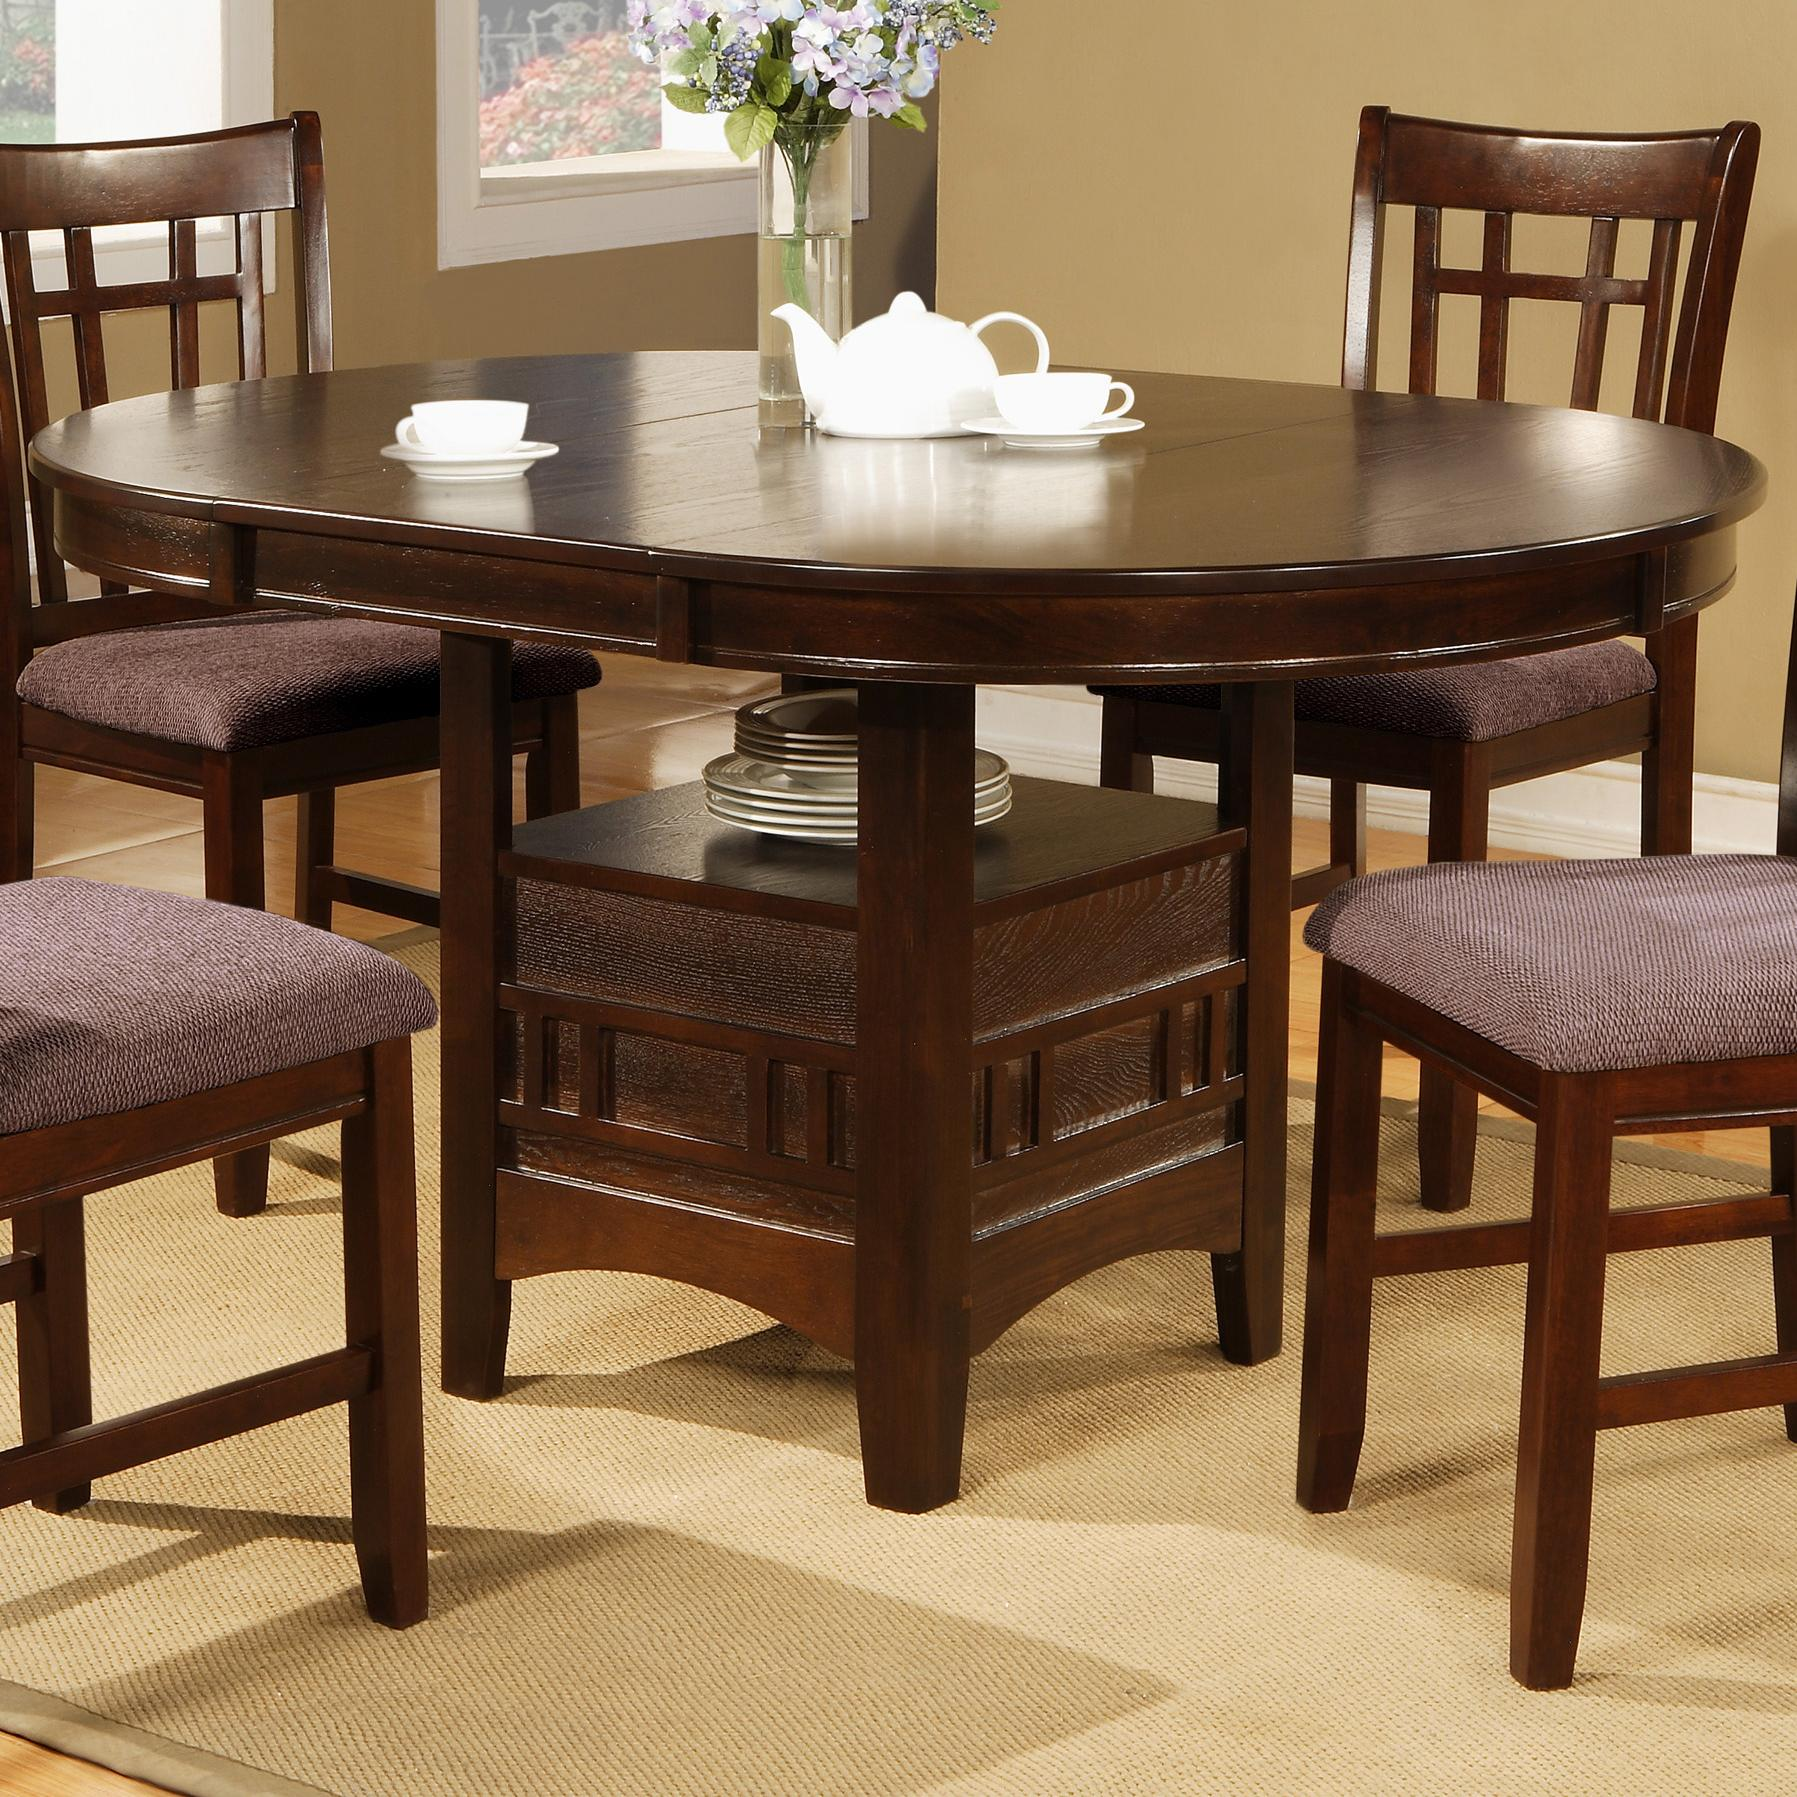 Crown mark empire round dining table with 18 leaf del for Furniture markup